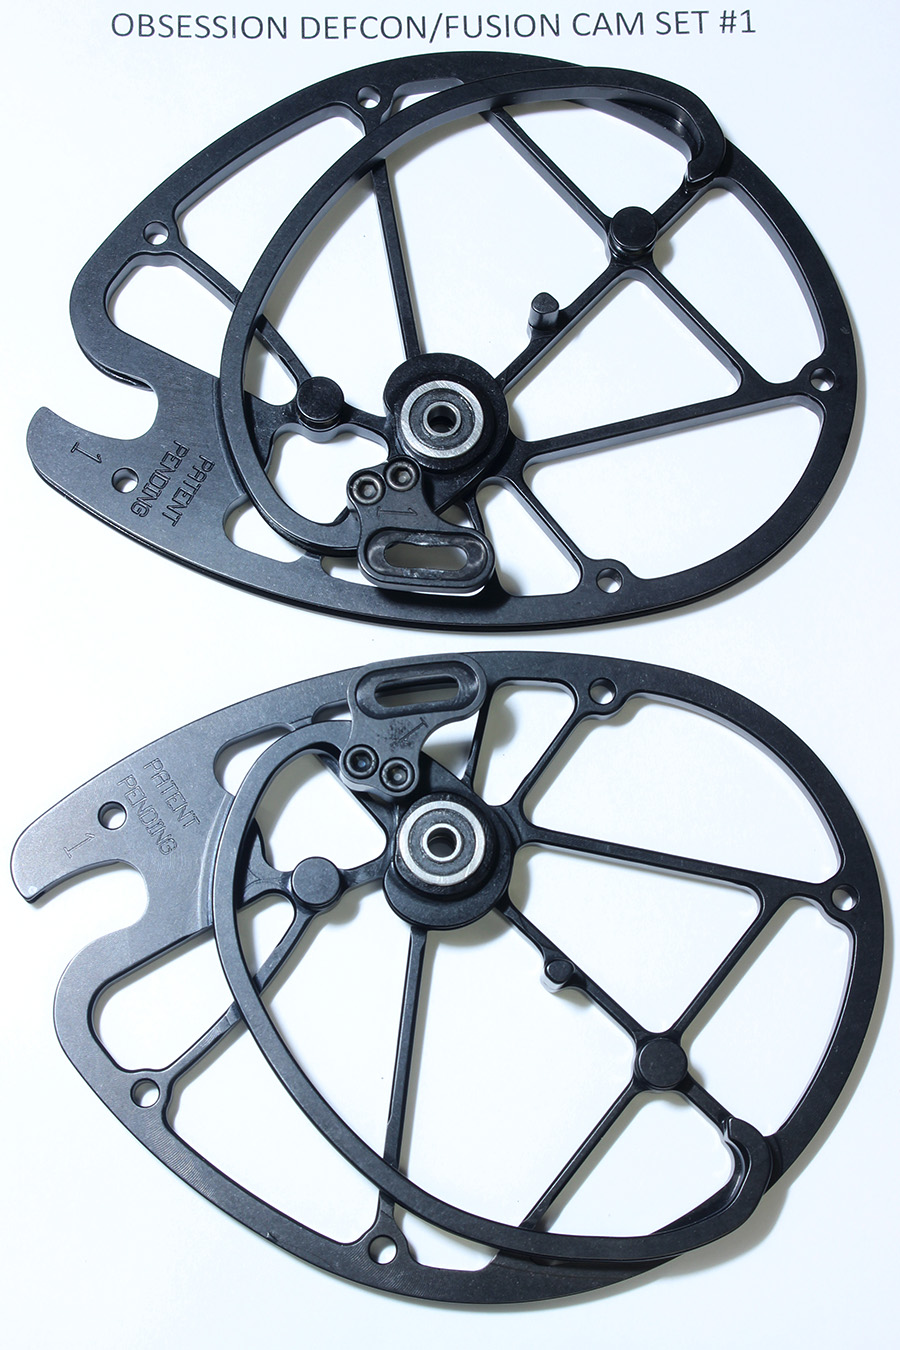 OEM Obsession Archery Defcon/Fusion 2-PC Cam Set, Size #1 (Top & Bottom) photo 2